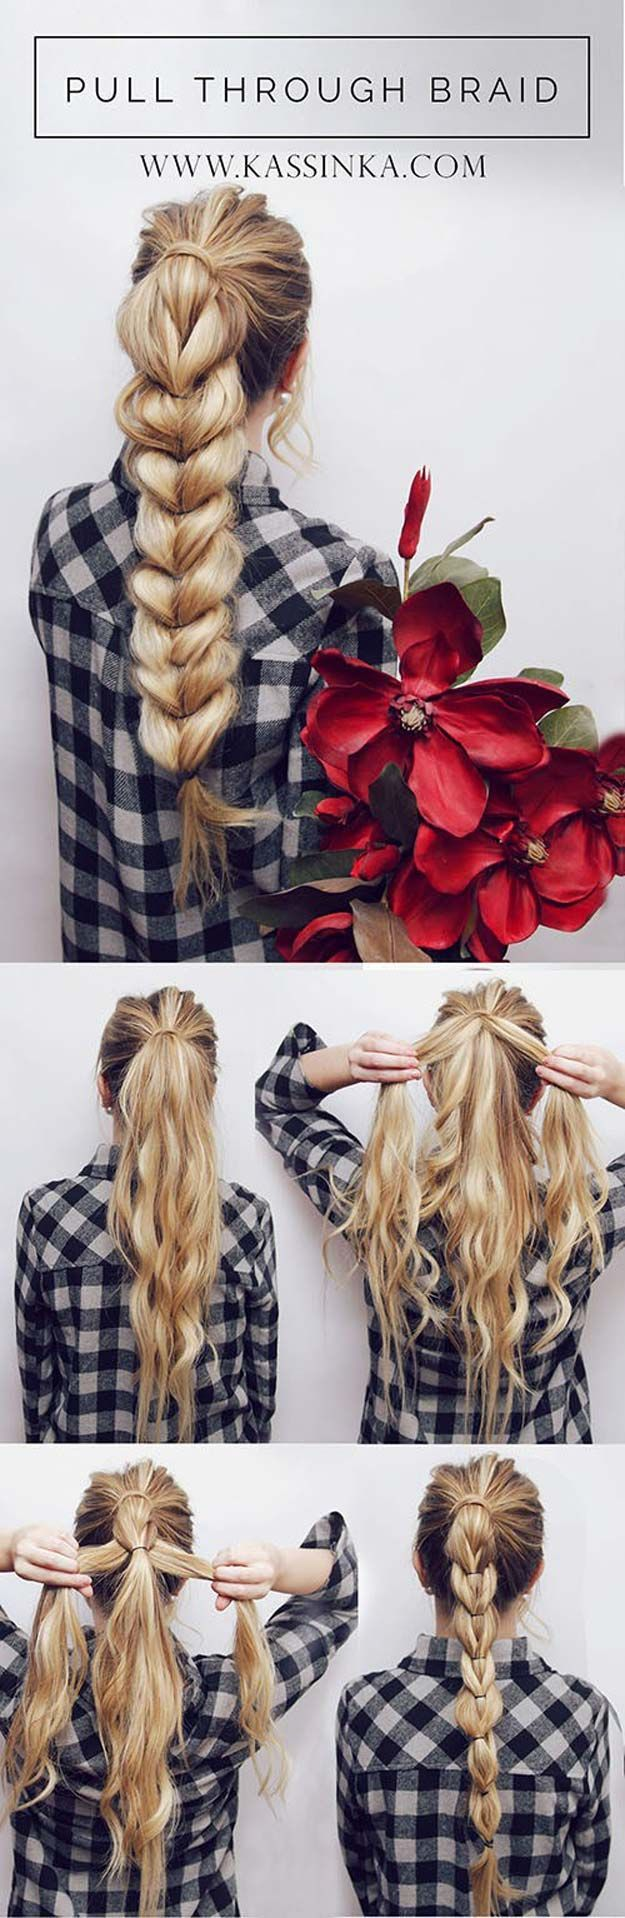 Best Hair Braiding Tutorials - Pull Through Braid Tutorial - Easy Step by Step Tutorials for Braids - How To Braid Fishtail, French Braids, Flower Crown, Side Braids, Cornrows, Updos - Cool Braided Hairstyles for Girls, Teens and Women - School, Day and E